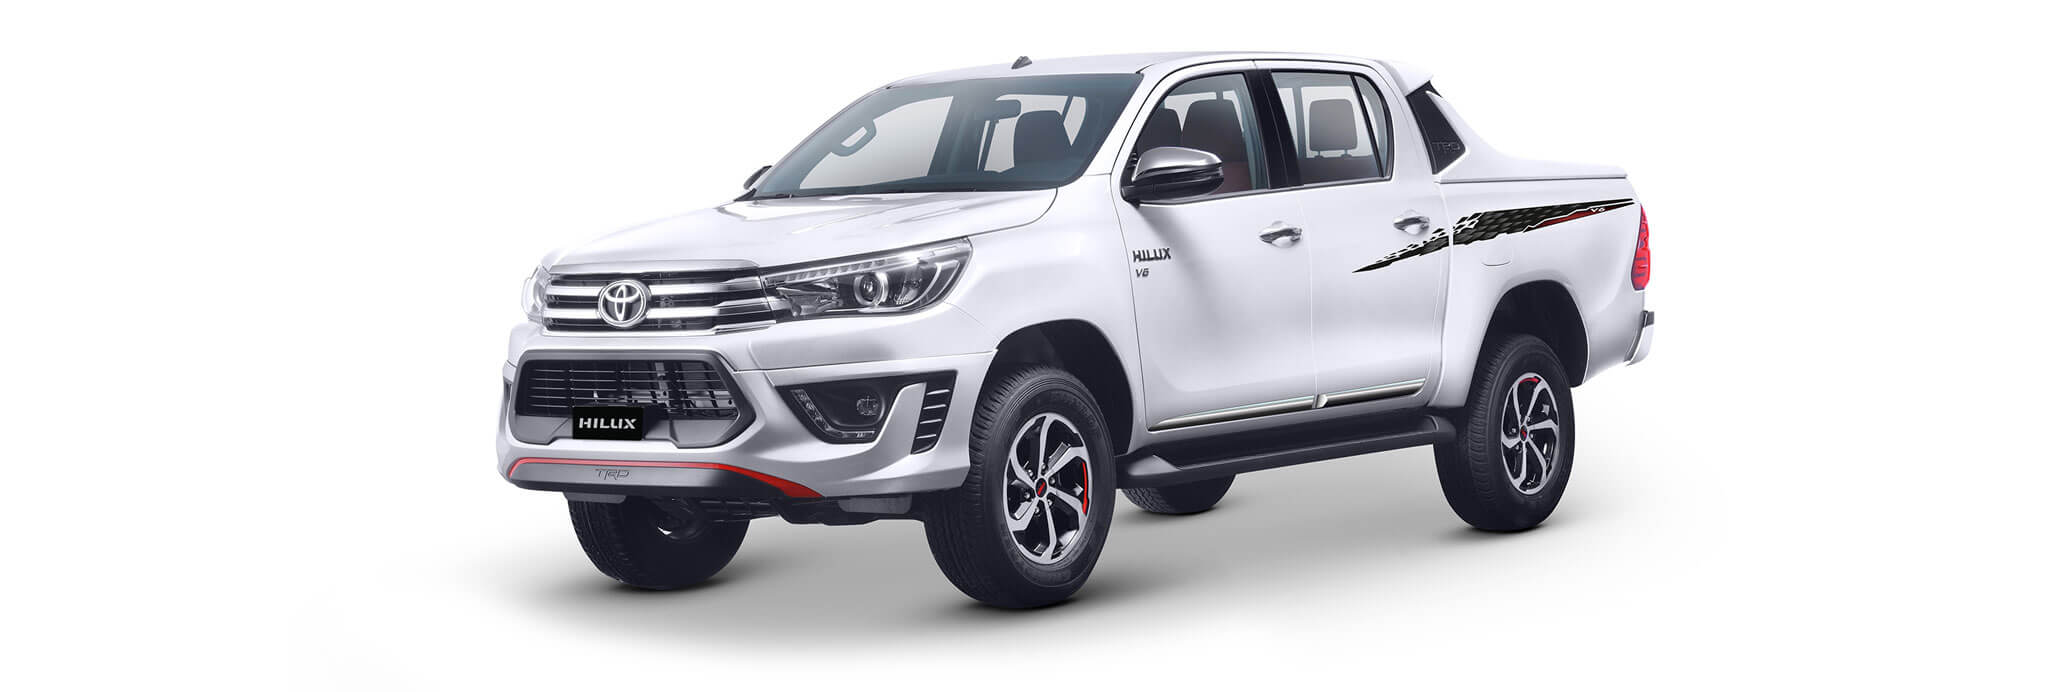 New Toyota Hilux White Colors New Design